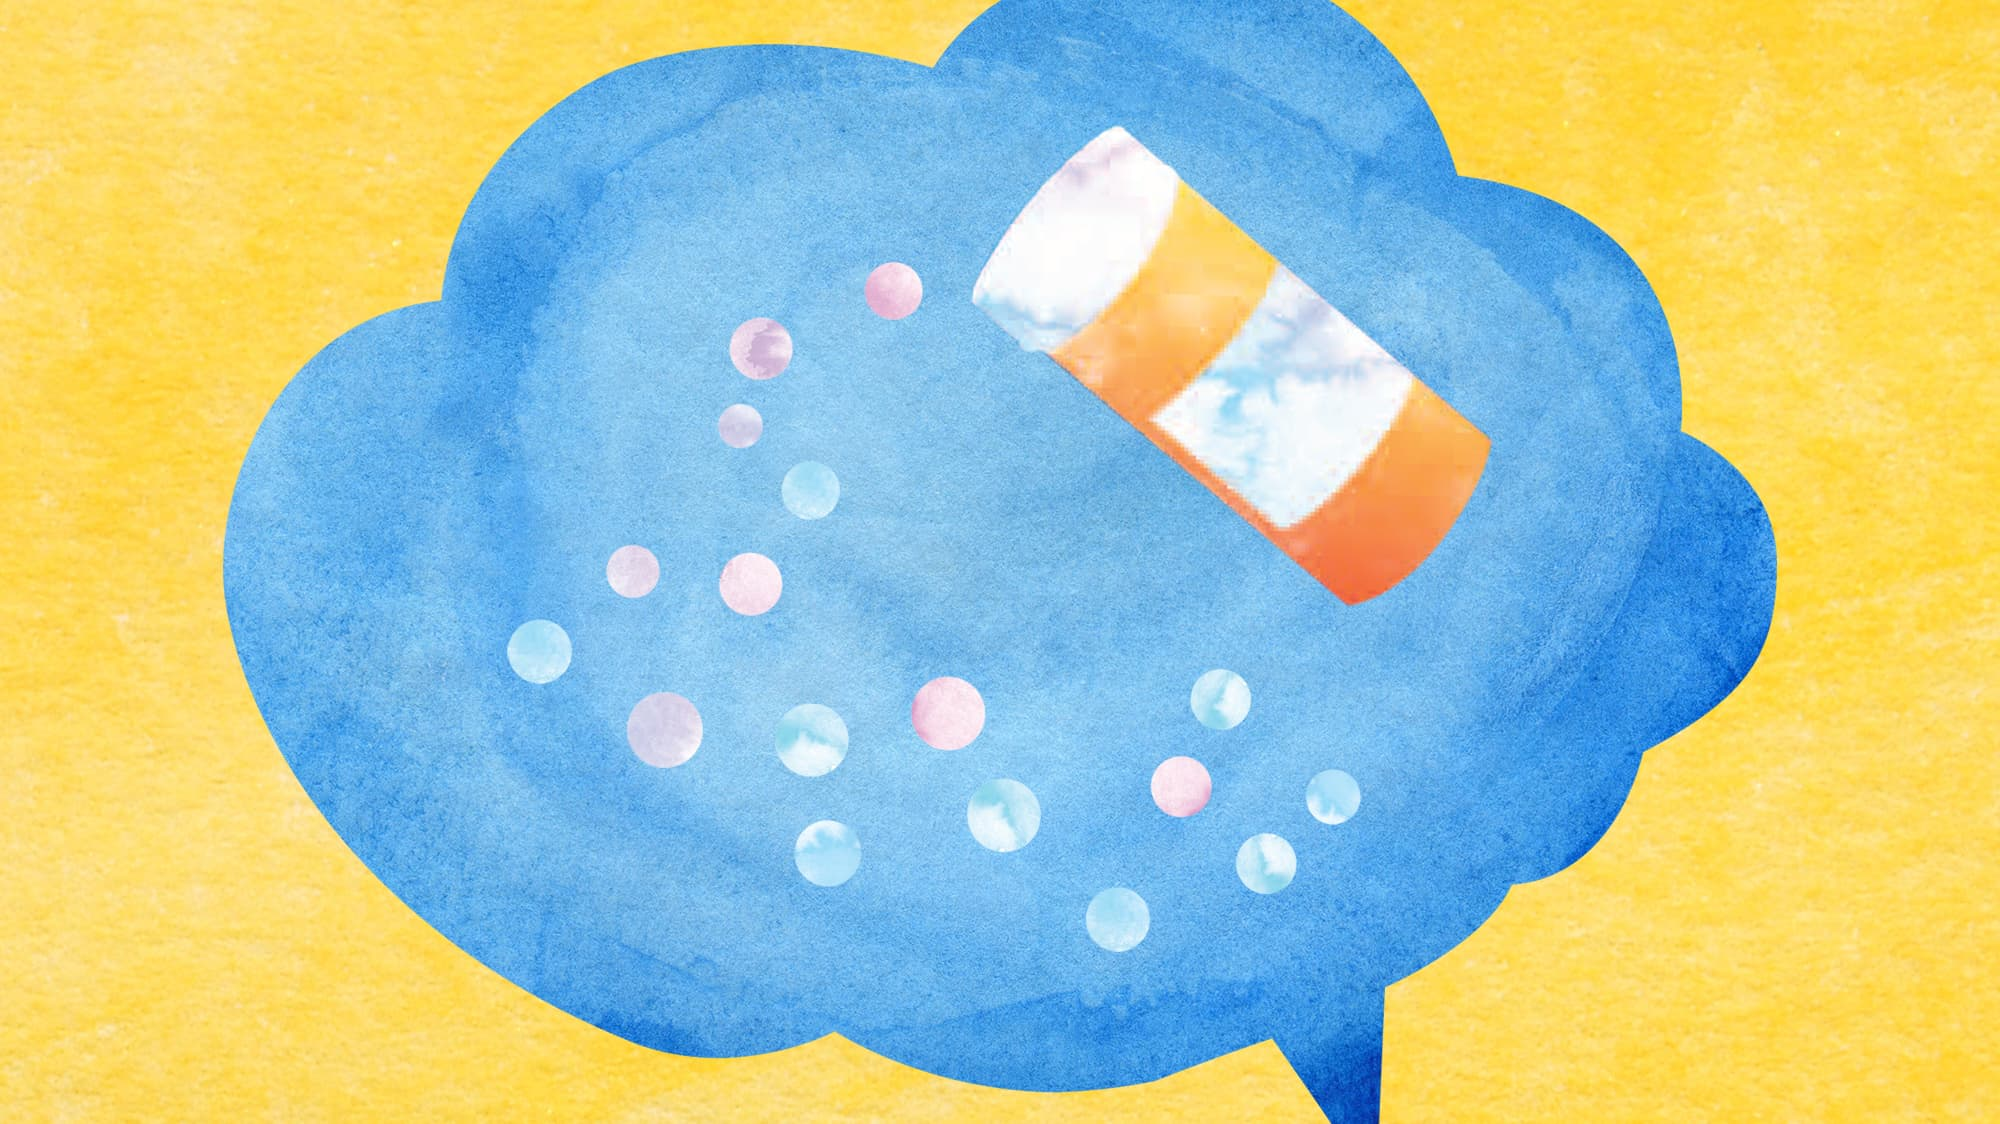 An illustration of a blue speech bubble with a prescription bottle and pills inside it.